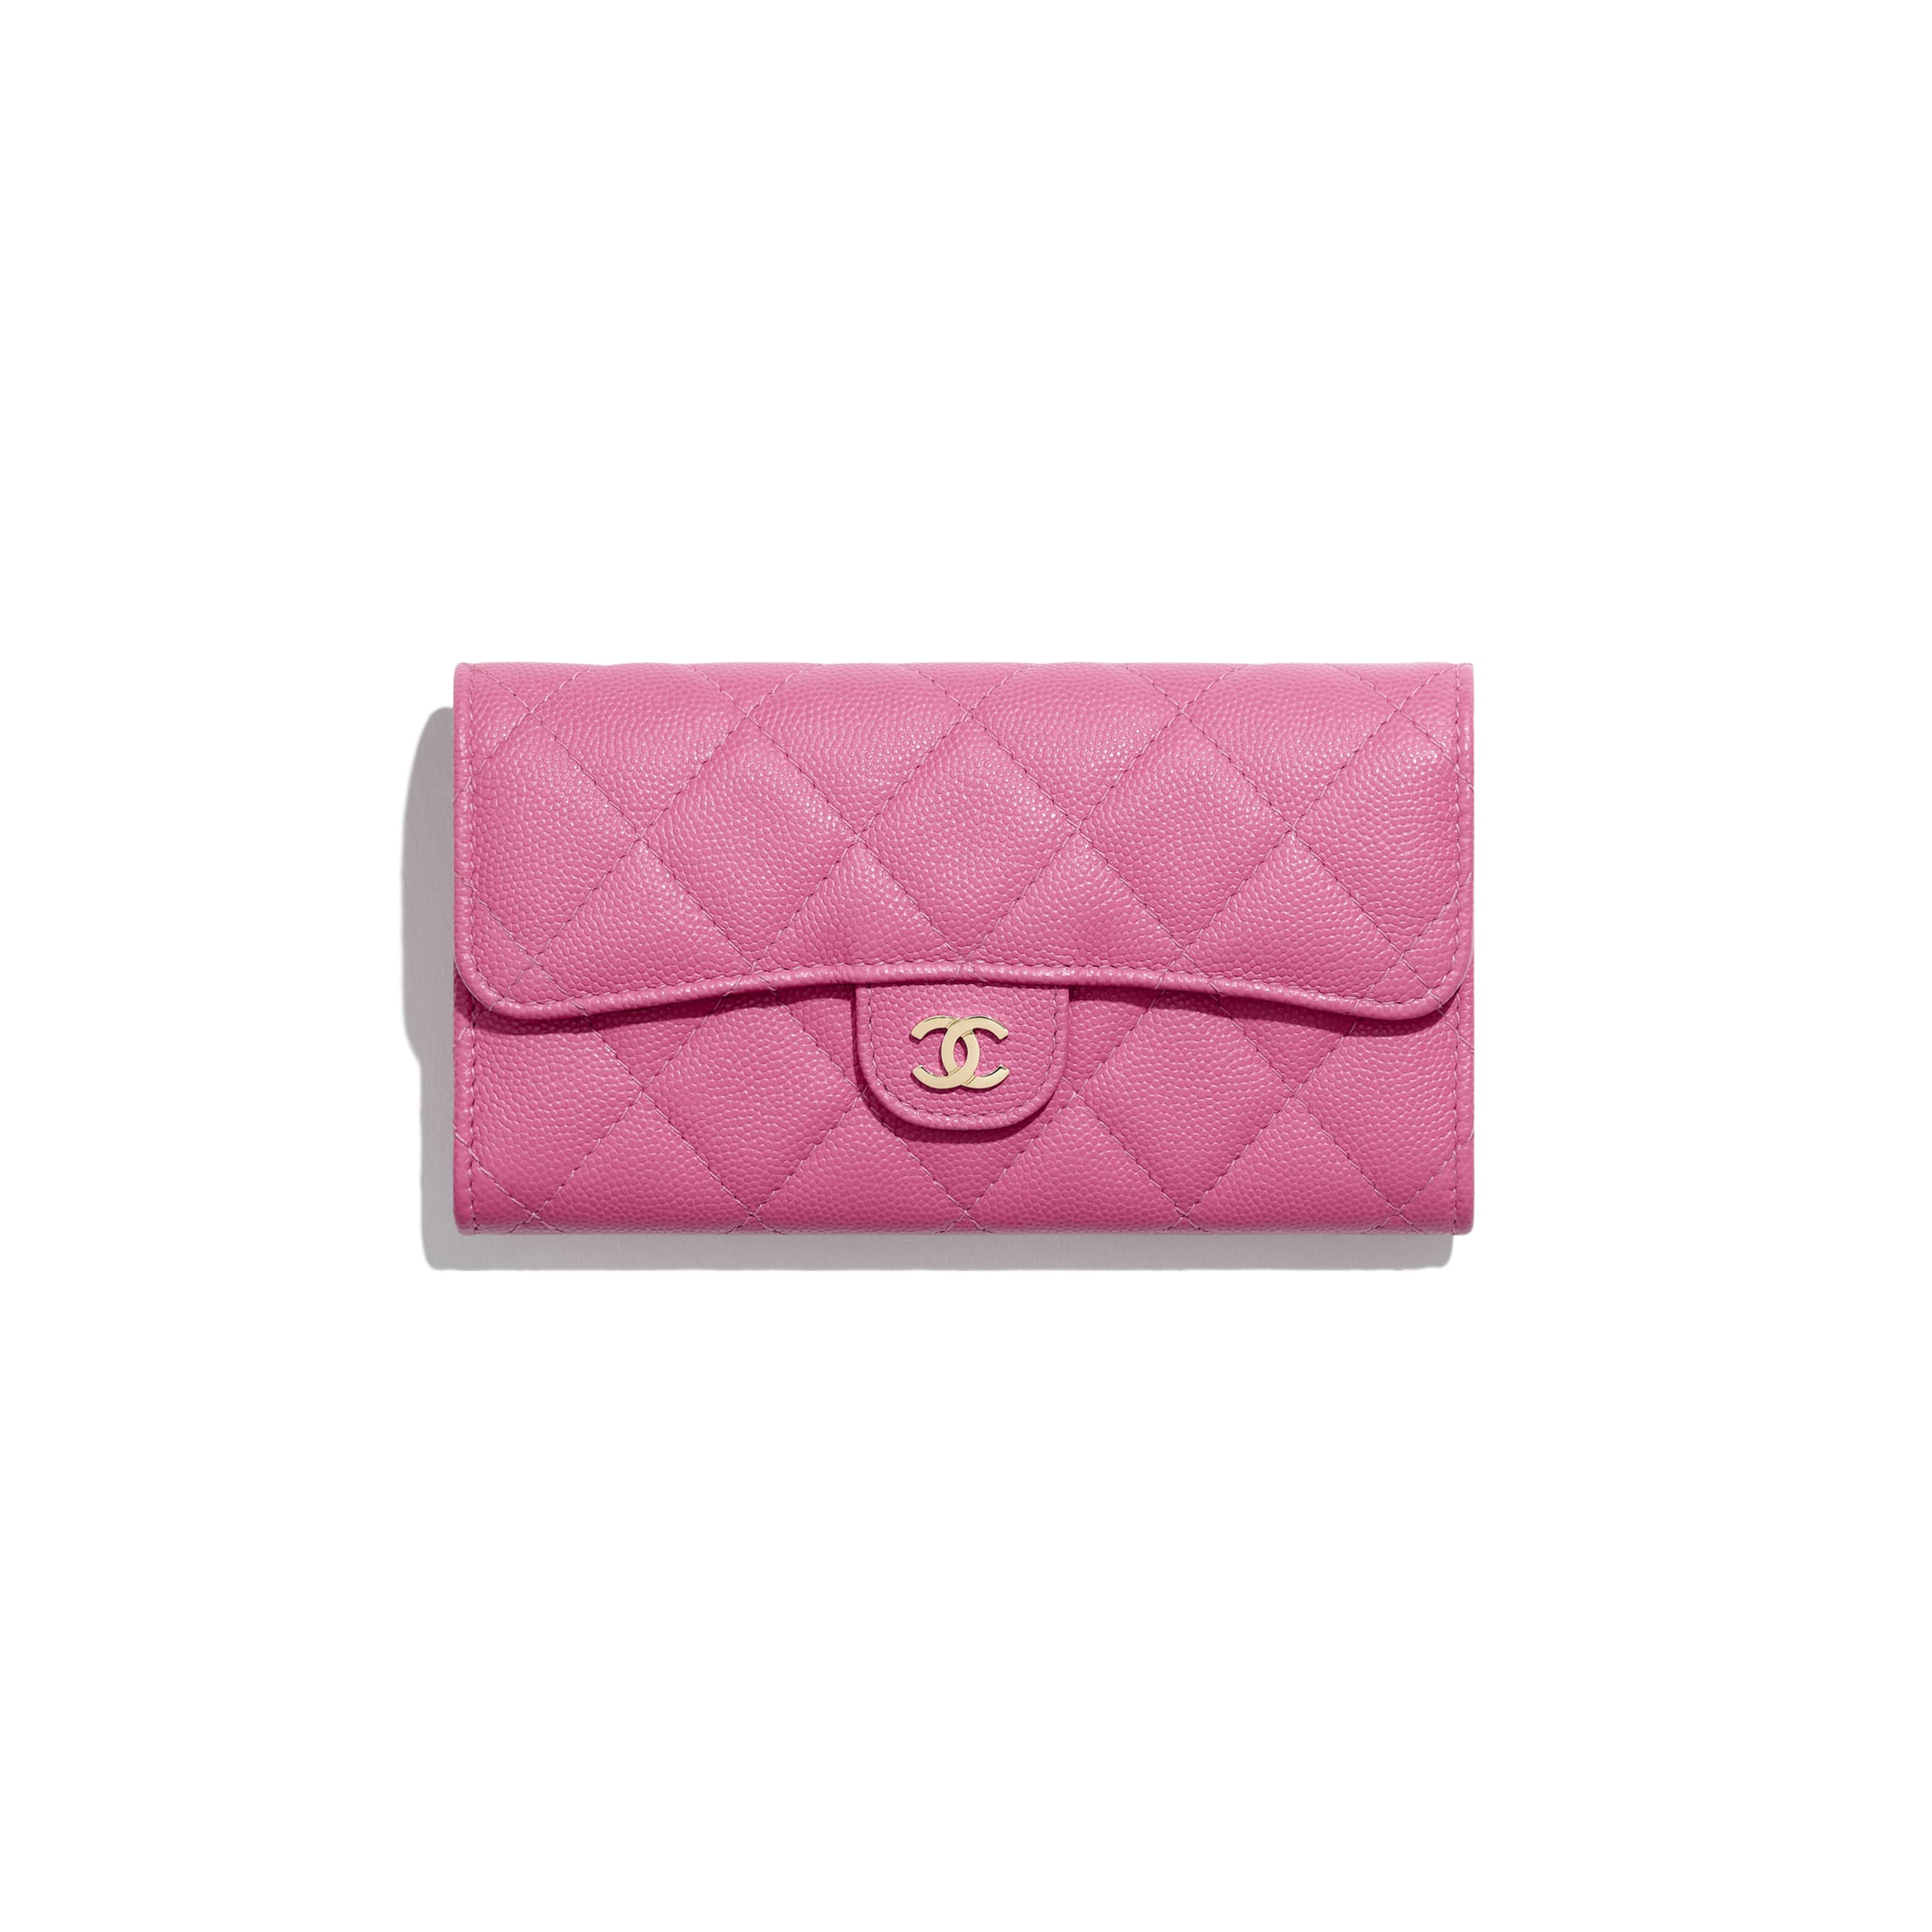 Classic Flap Wallet - Pink - Grained Calfskin & Gold-Tone Metal - Default view - see standard sized version